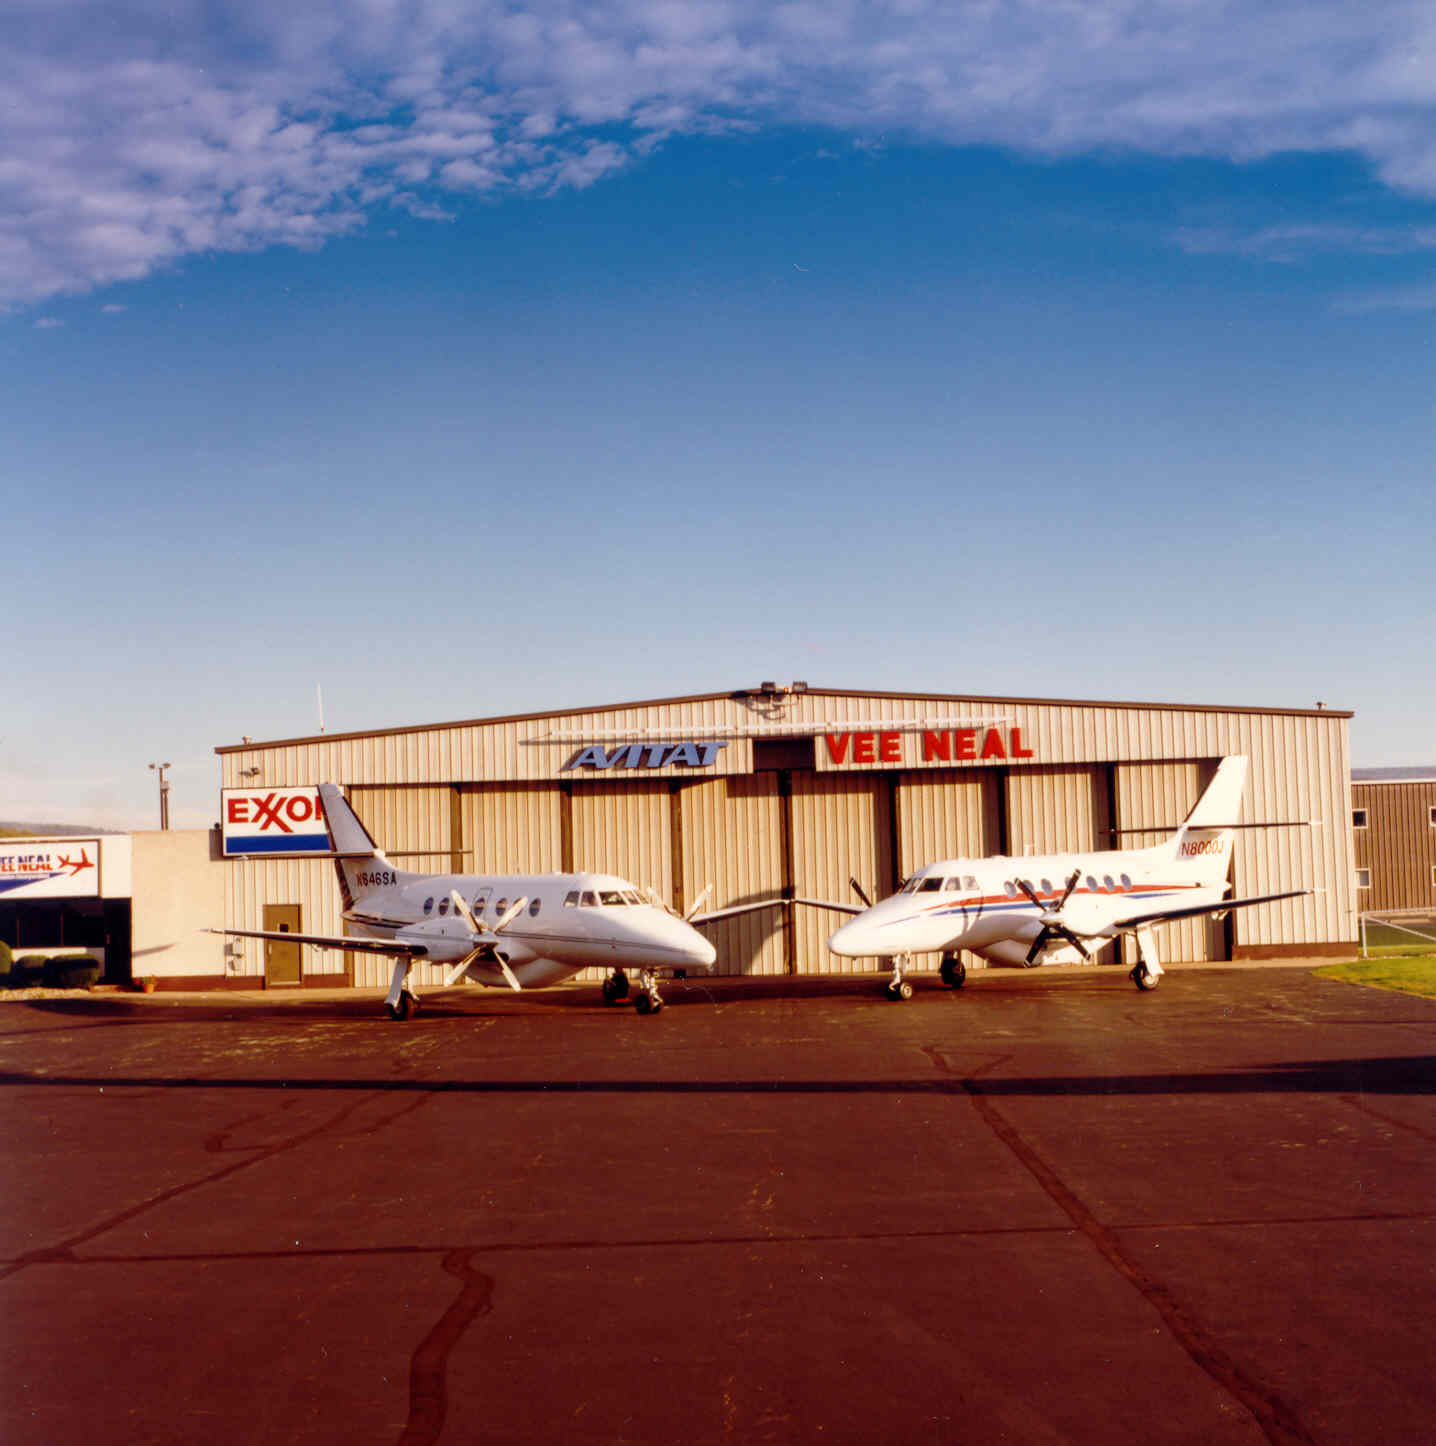 Vee Neal Aviation